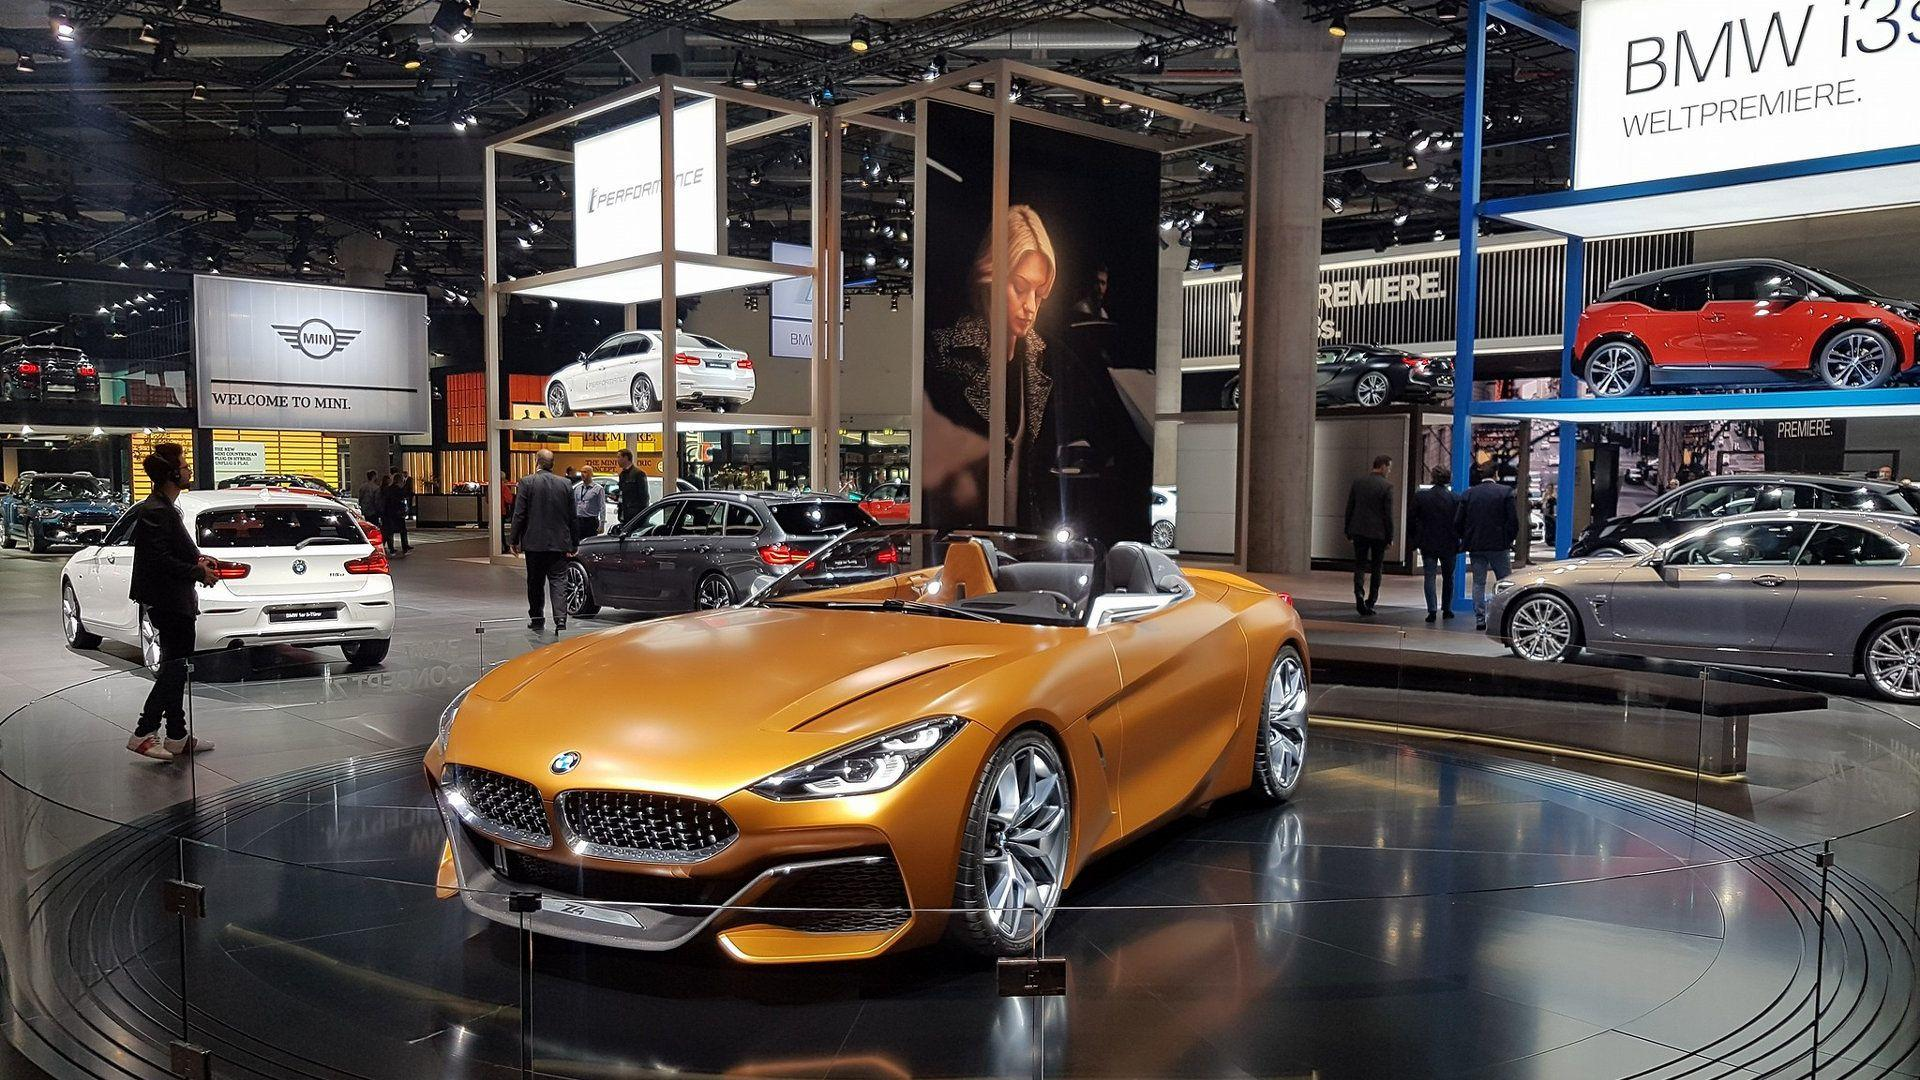 BMW Reducing Frankfurt Motor Show Presence In Place Of Tech Expos - Bmw car show